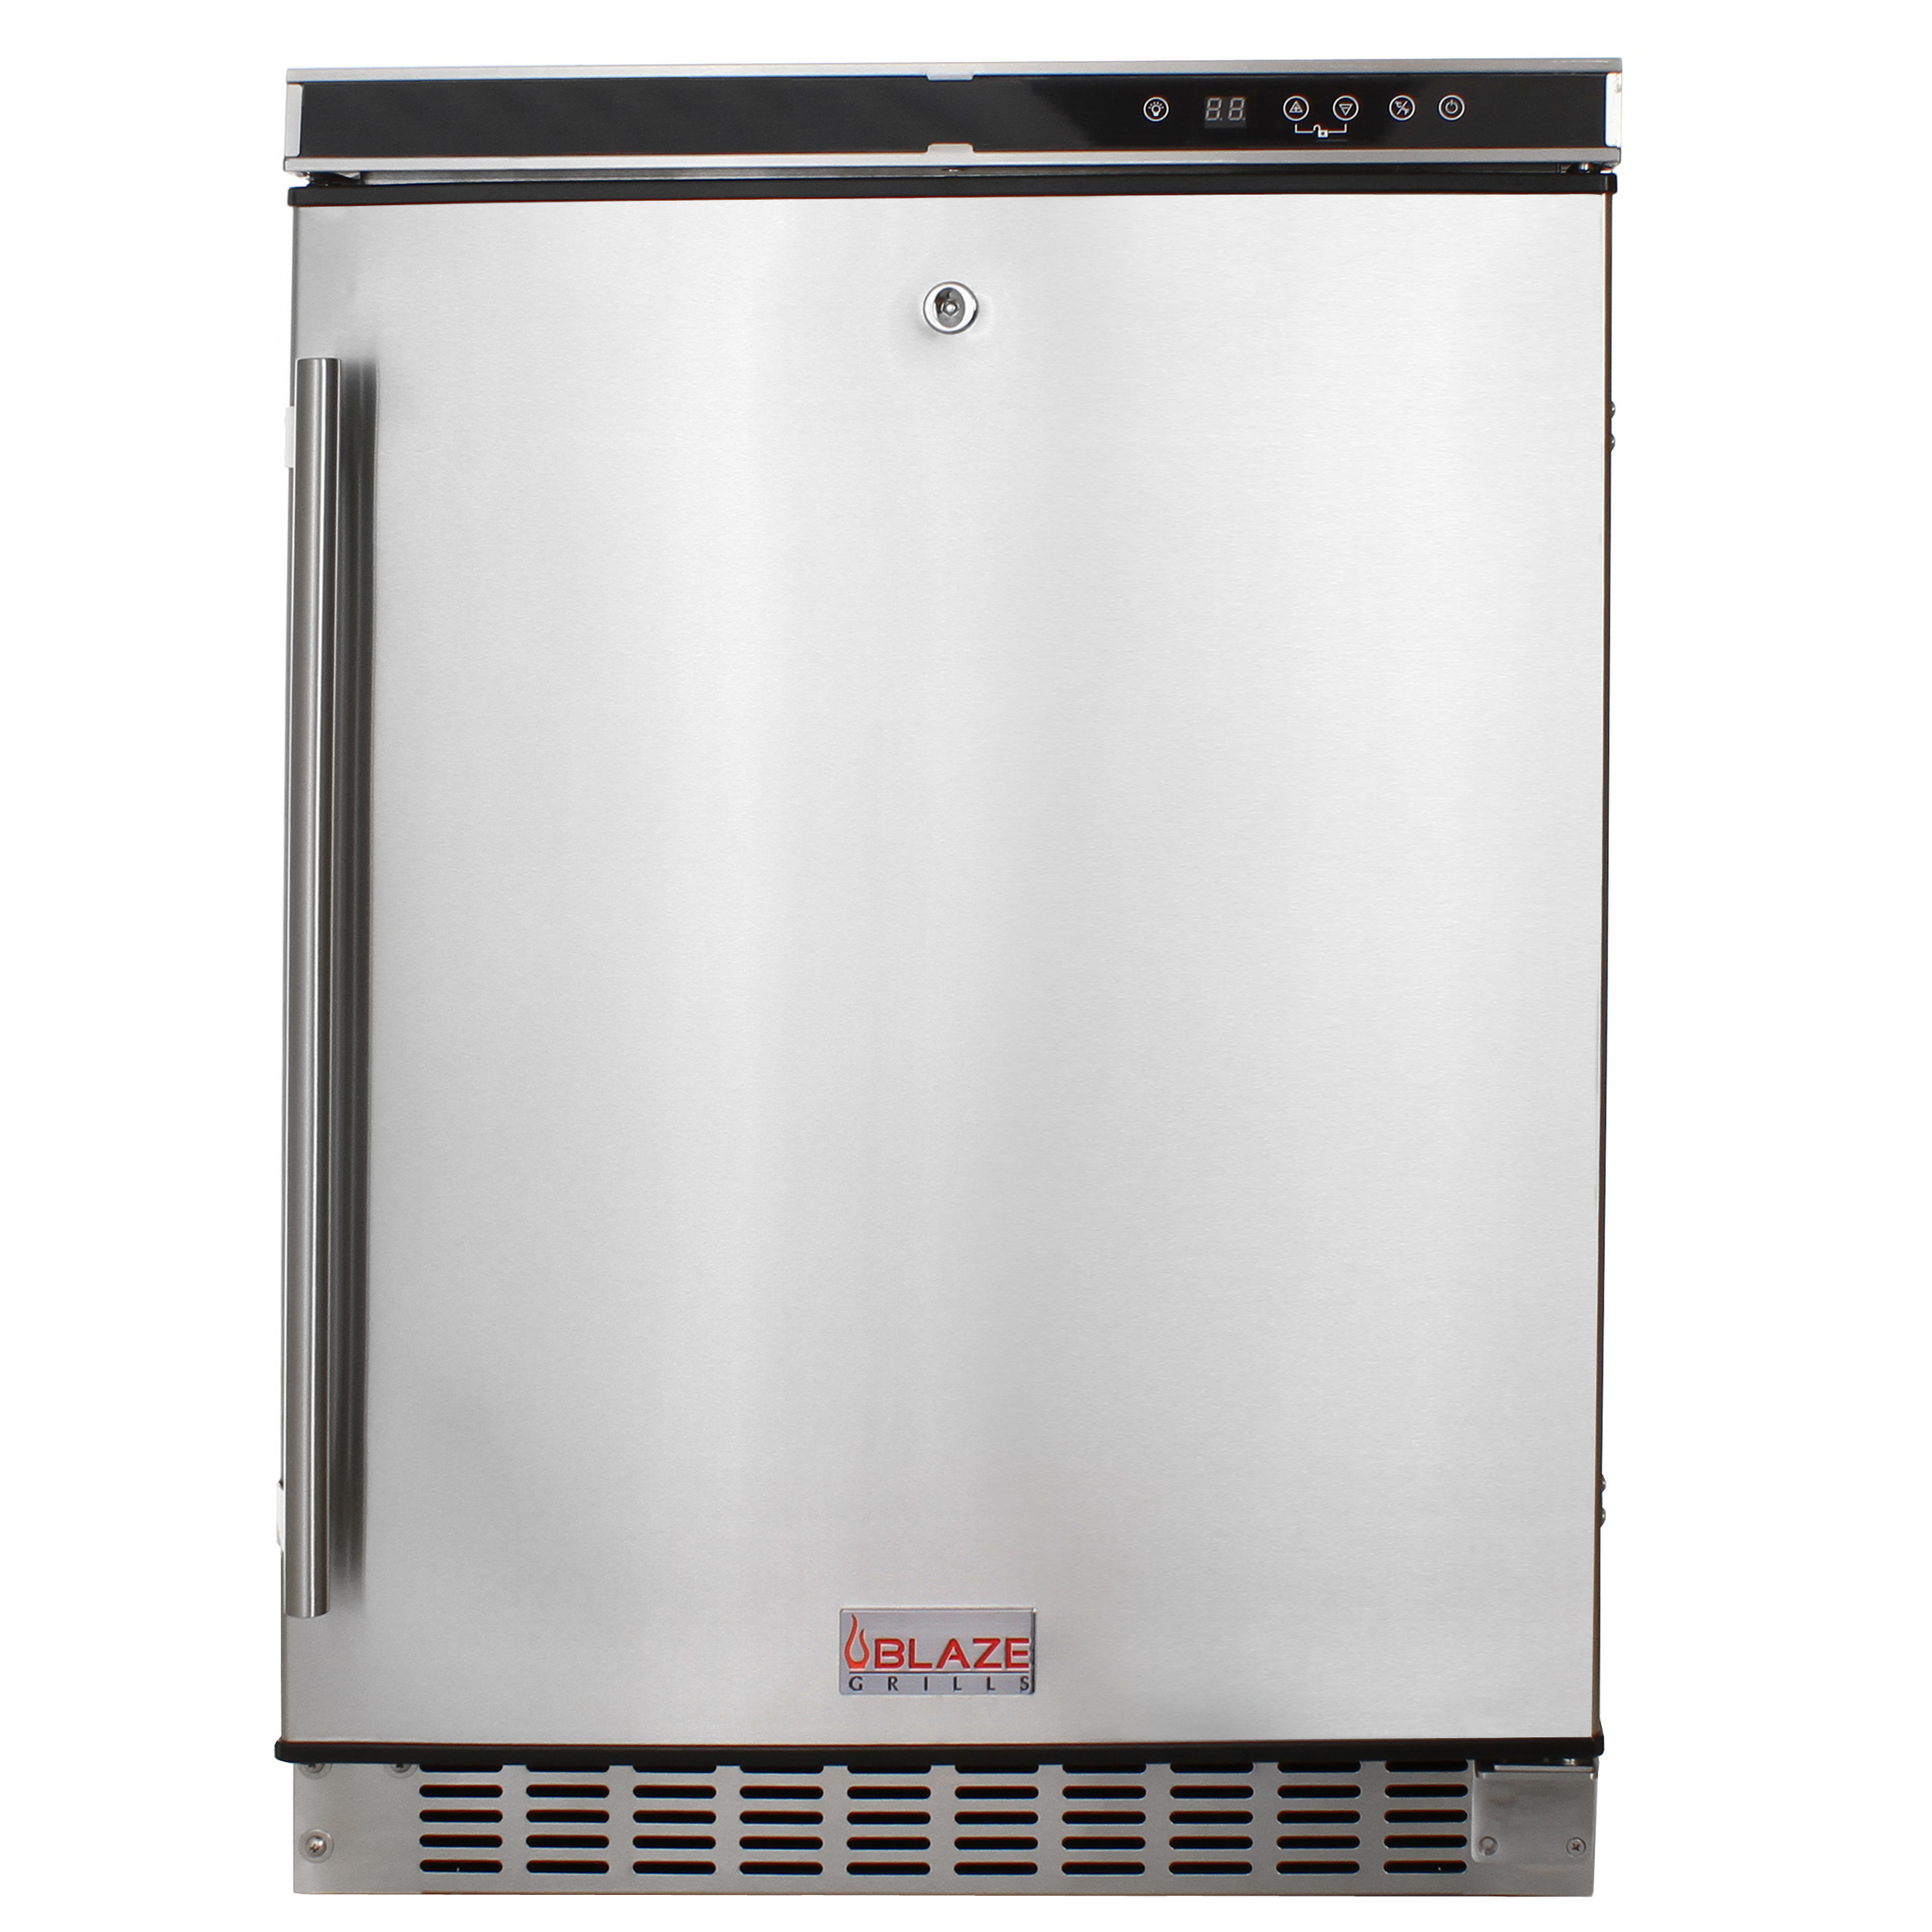 The Blaze outdoor rated refrigerator can't be left off the list. This refrigerator is a great refrigerator that has a solid 1 year warranty. It features a digital thermostat and lock. This is the cheapest of the 5 in the list, but we rarely have issues with the performance.